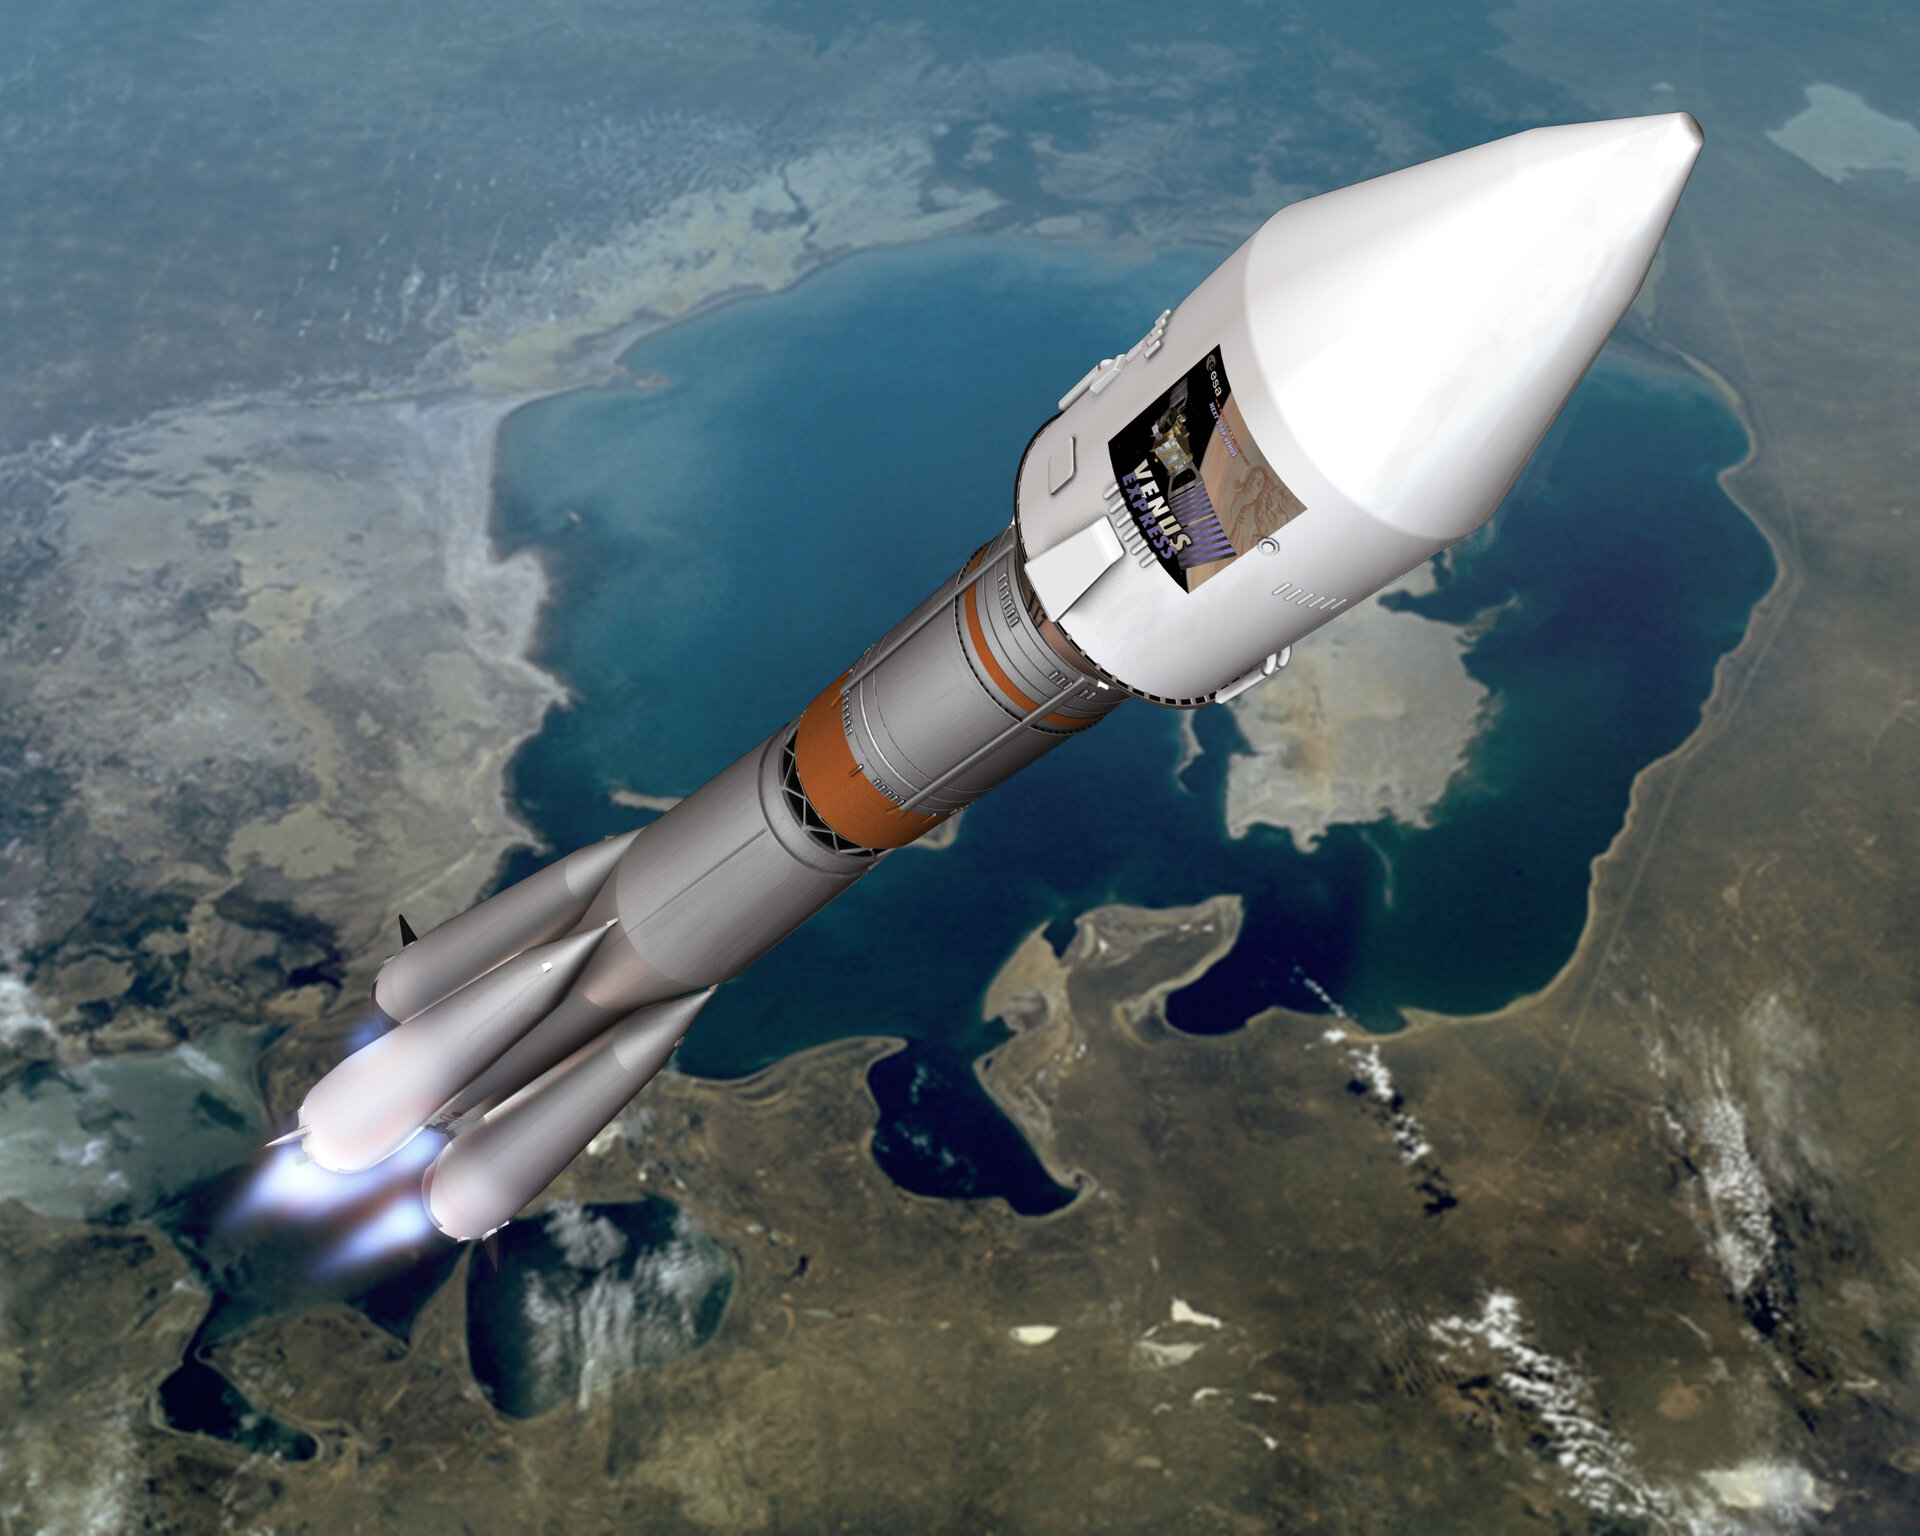 Artist's impression of Venus Express during launch